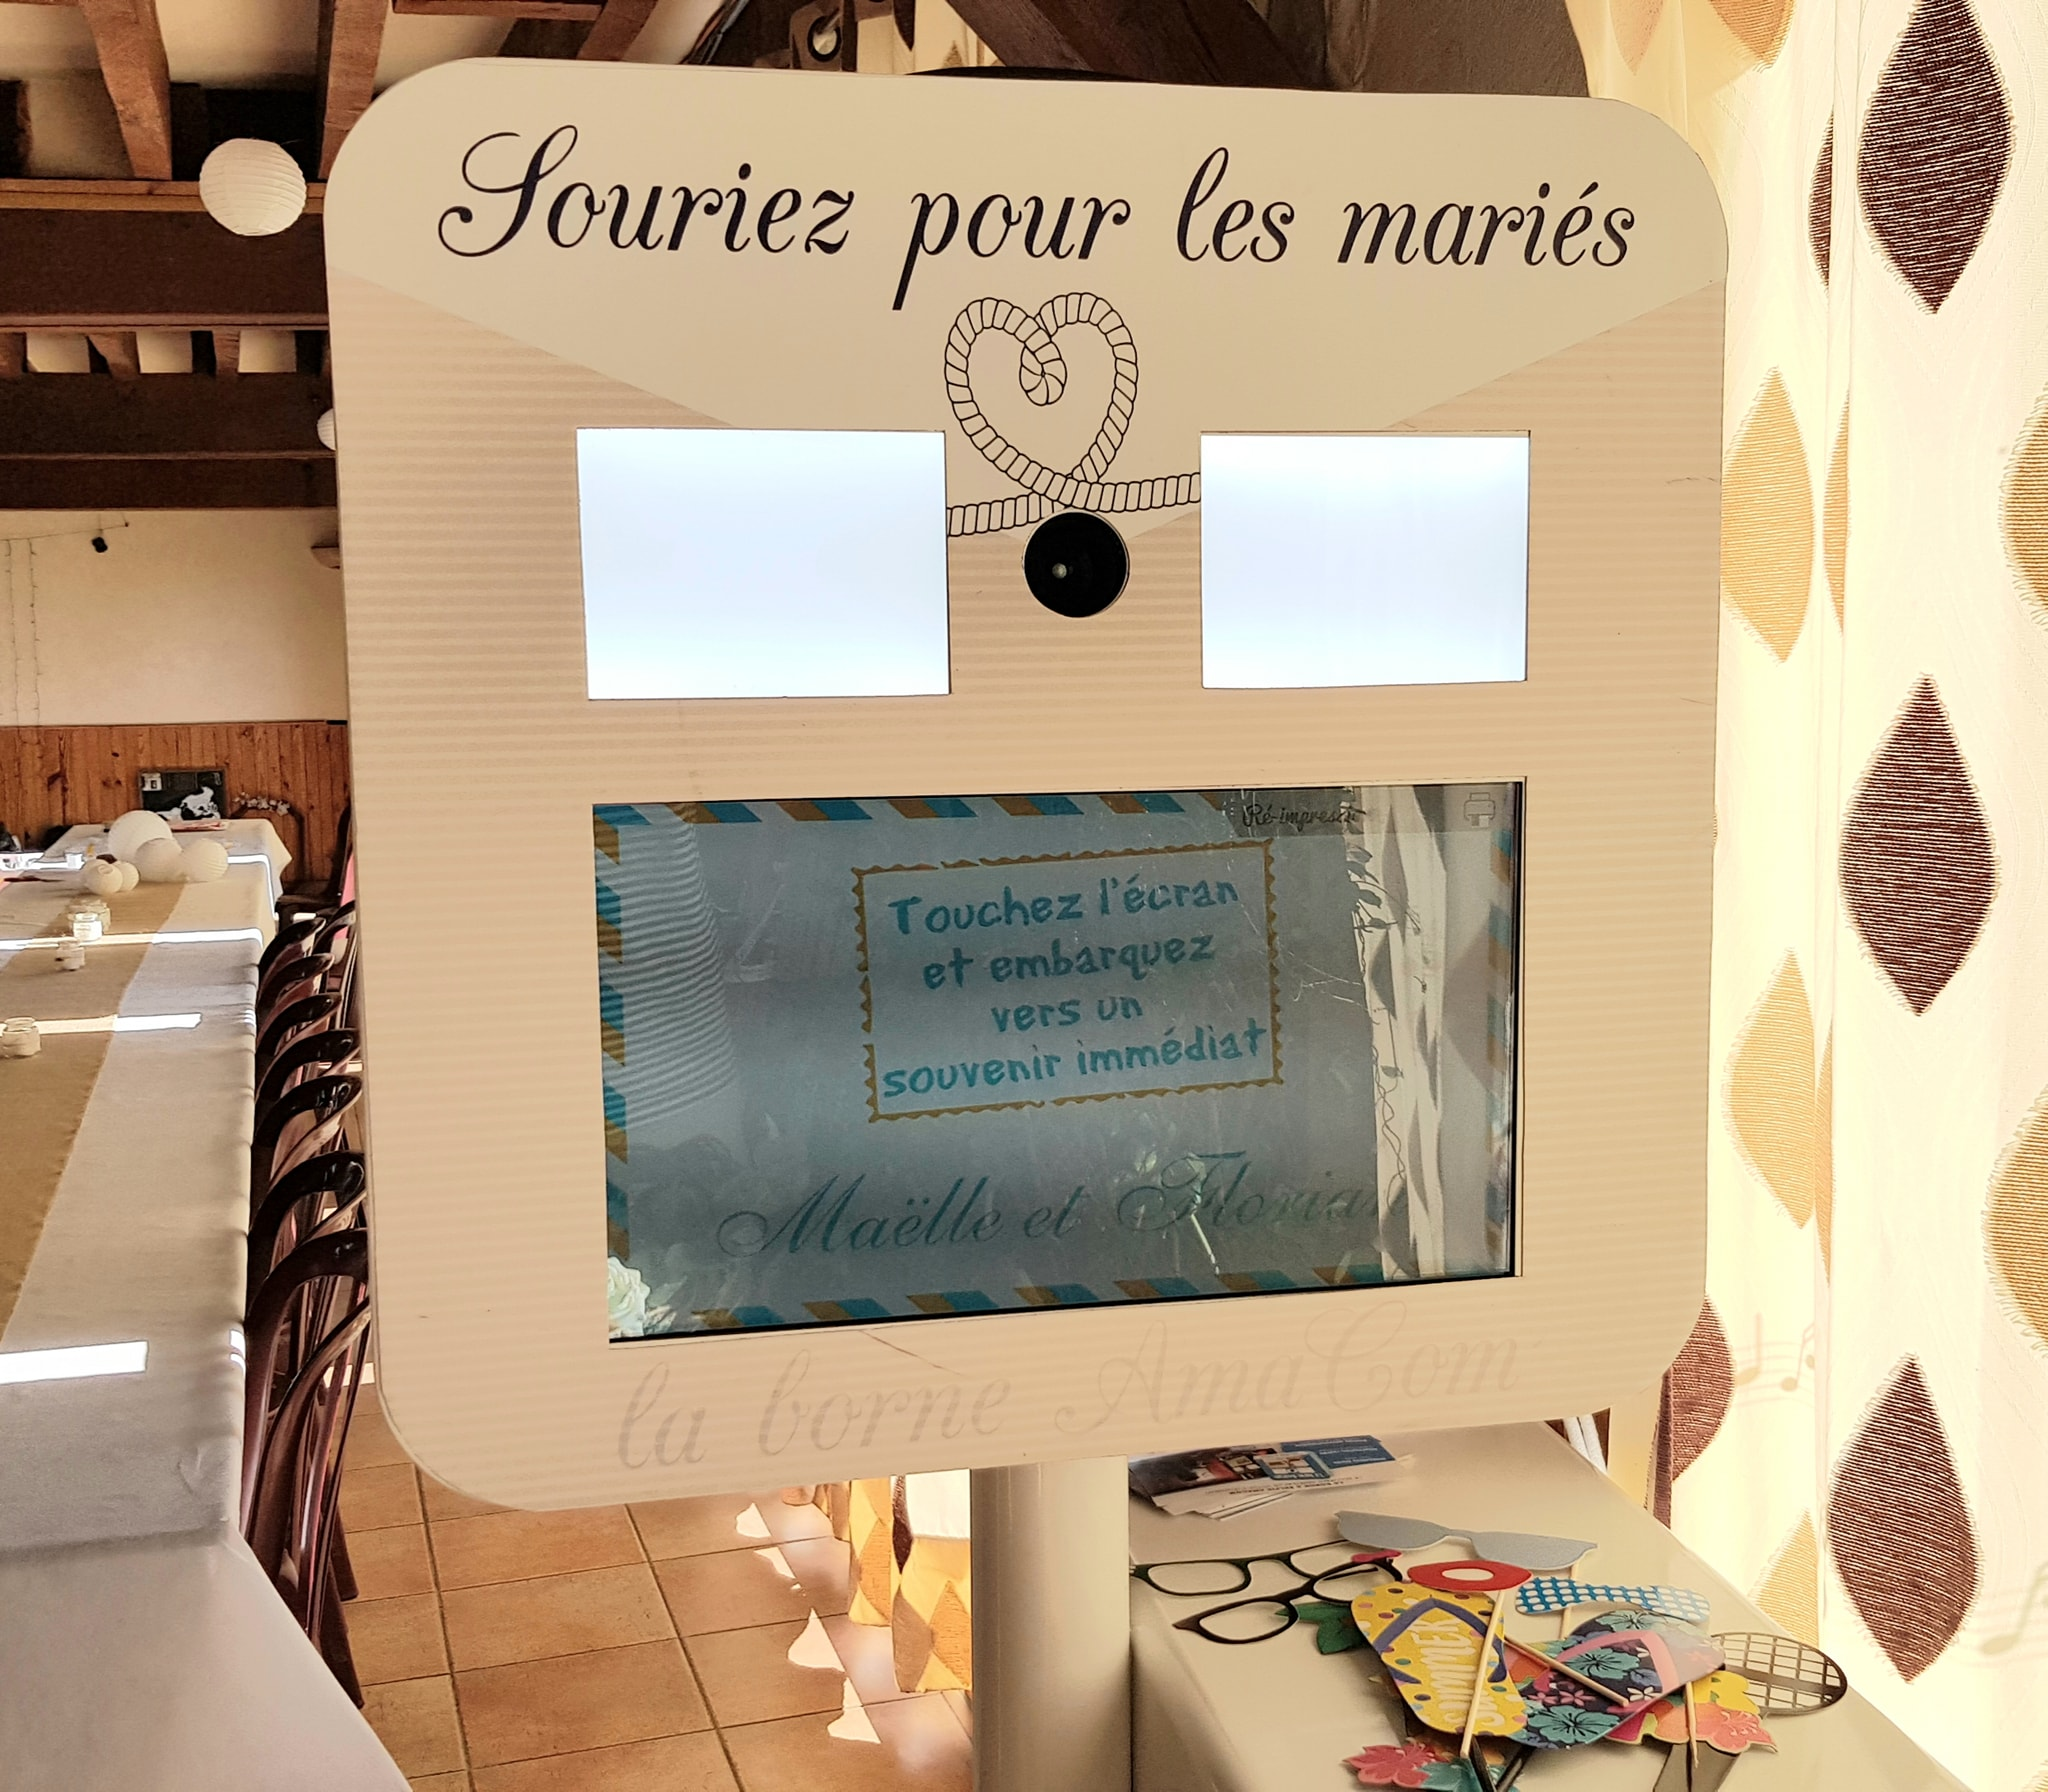 location photobooth borne selfie mariage evenement eure normandie bourgtheroulde elbeuf le neubourg